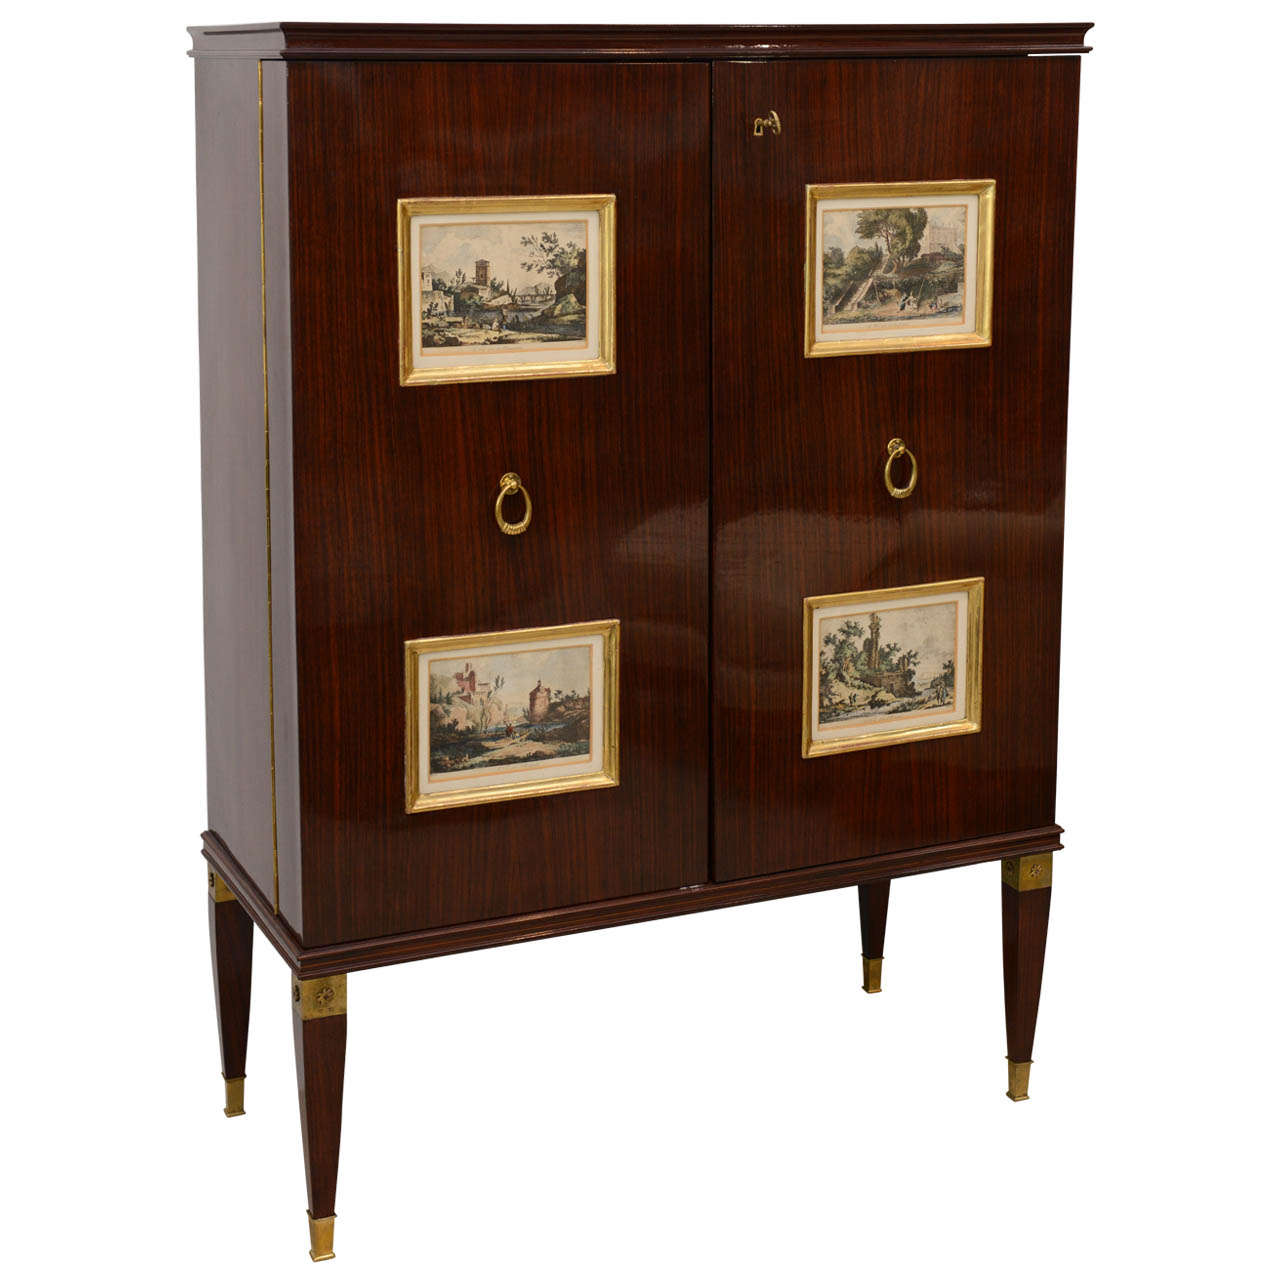 Fine Paolo Buffa Mahogany and Gilt Bronze Bar Cabinet, Italy